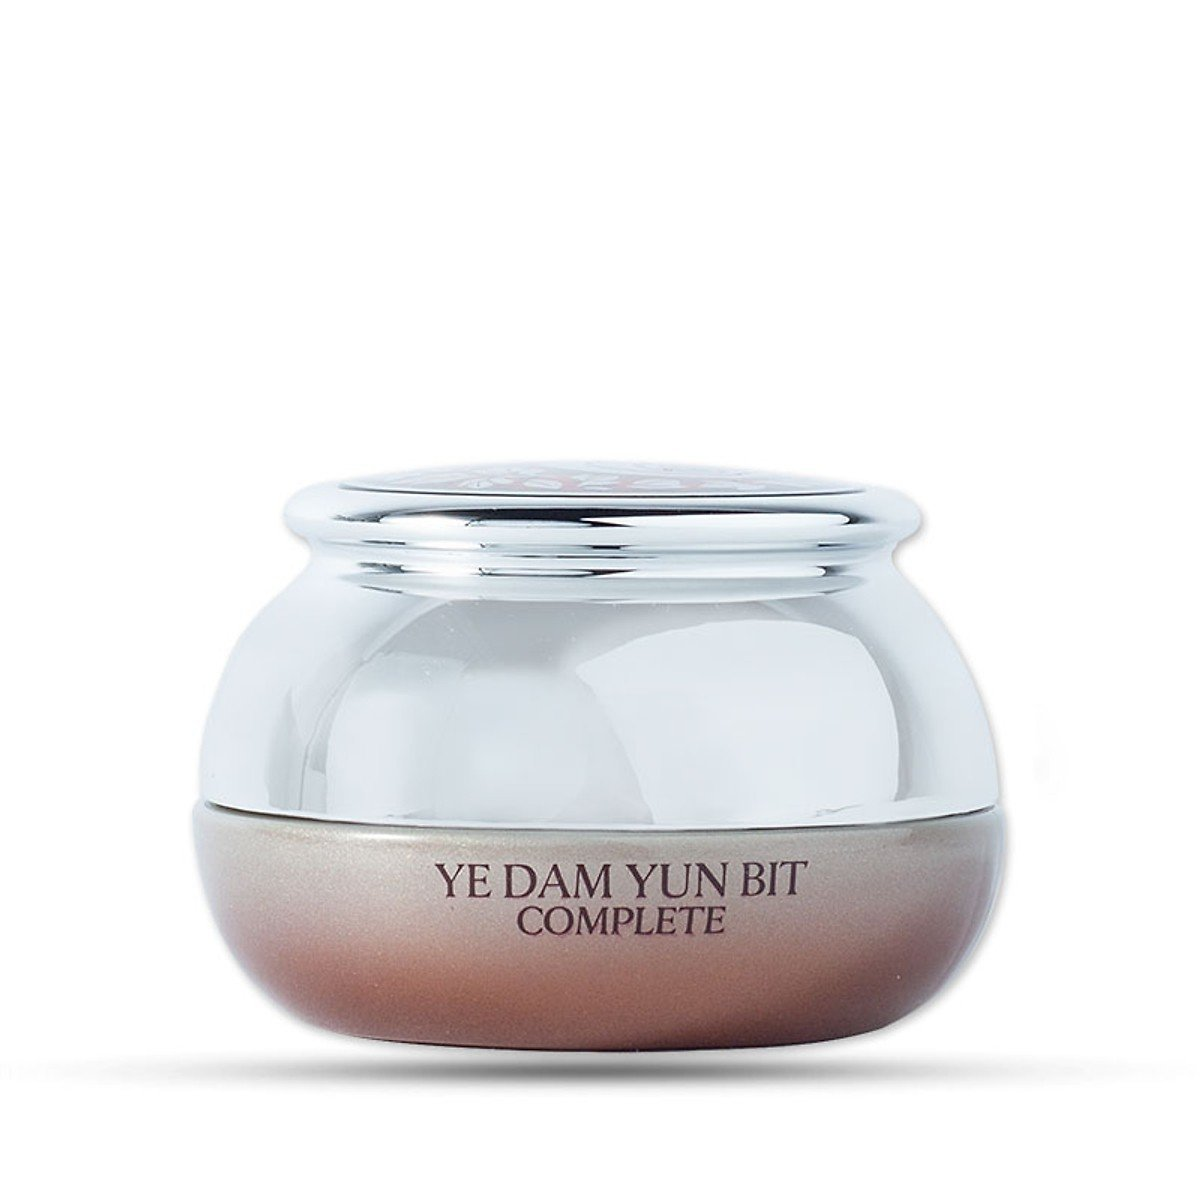 Ye Dam Yun Bit Complete Snail Recover Woman Elasticity Cream 50g